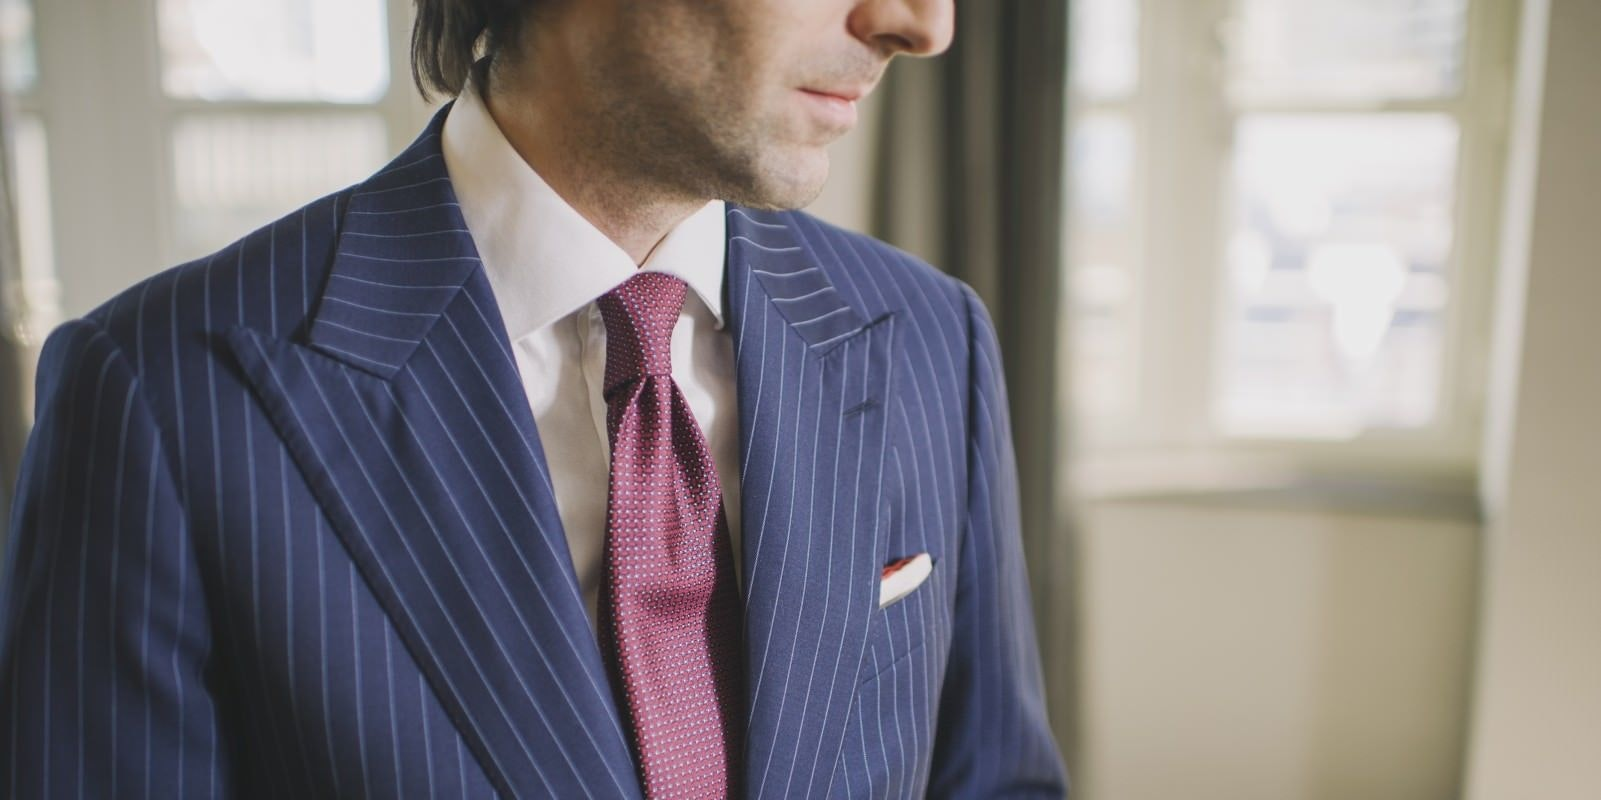 Meet the Tailors Who Created a Bulletproof, Knifeproof, Sharp-as-Hell Suit